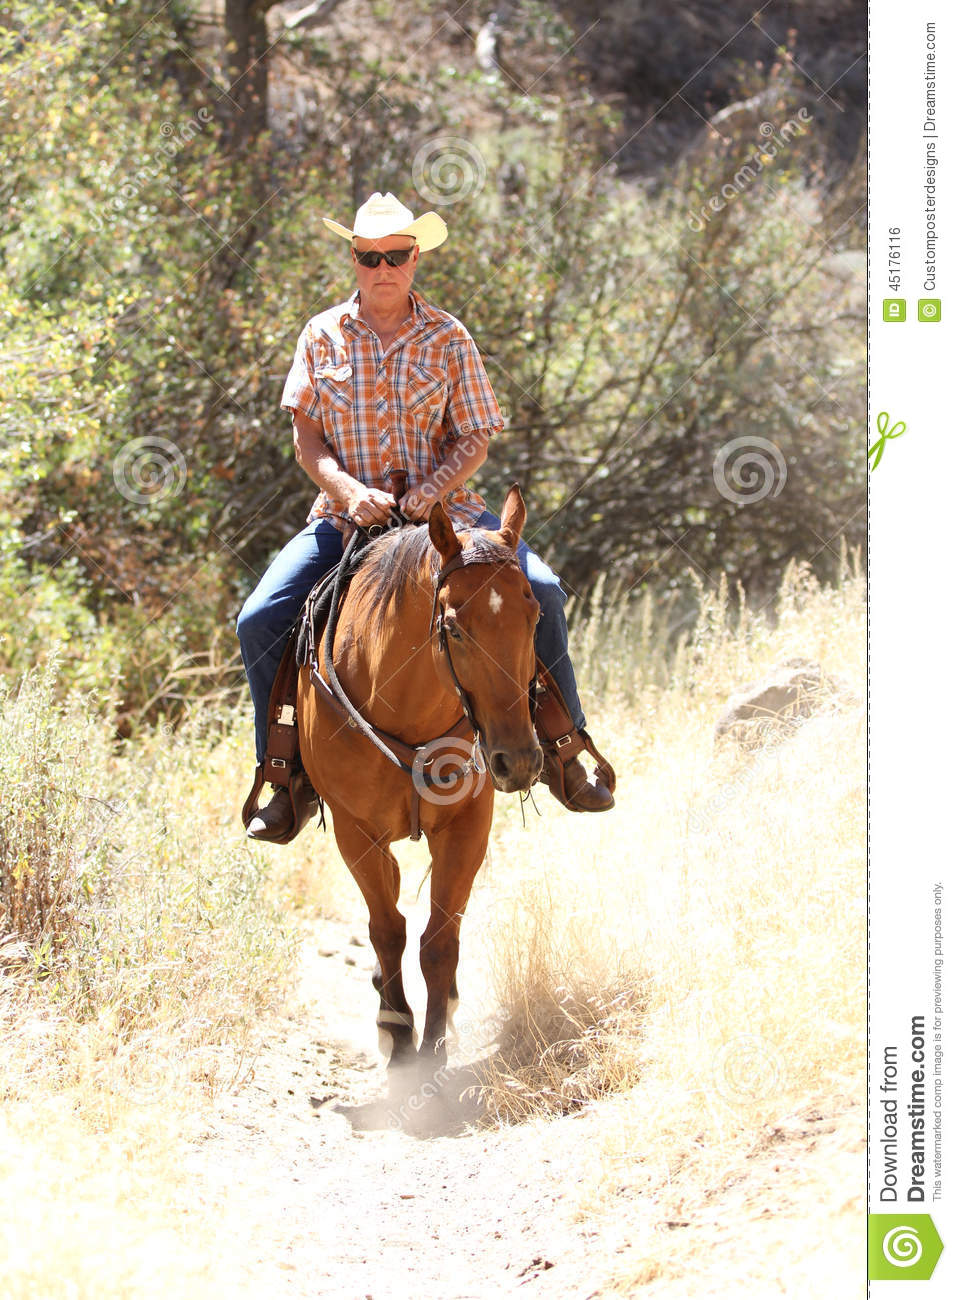 Download A Cowboy Riding In A Meadow With Trees Up A Mountain. Stock Photo - Image of hoof, bright: 45176116